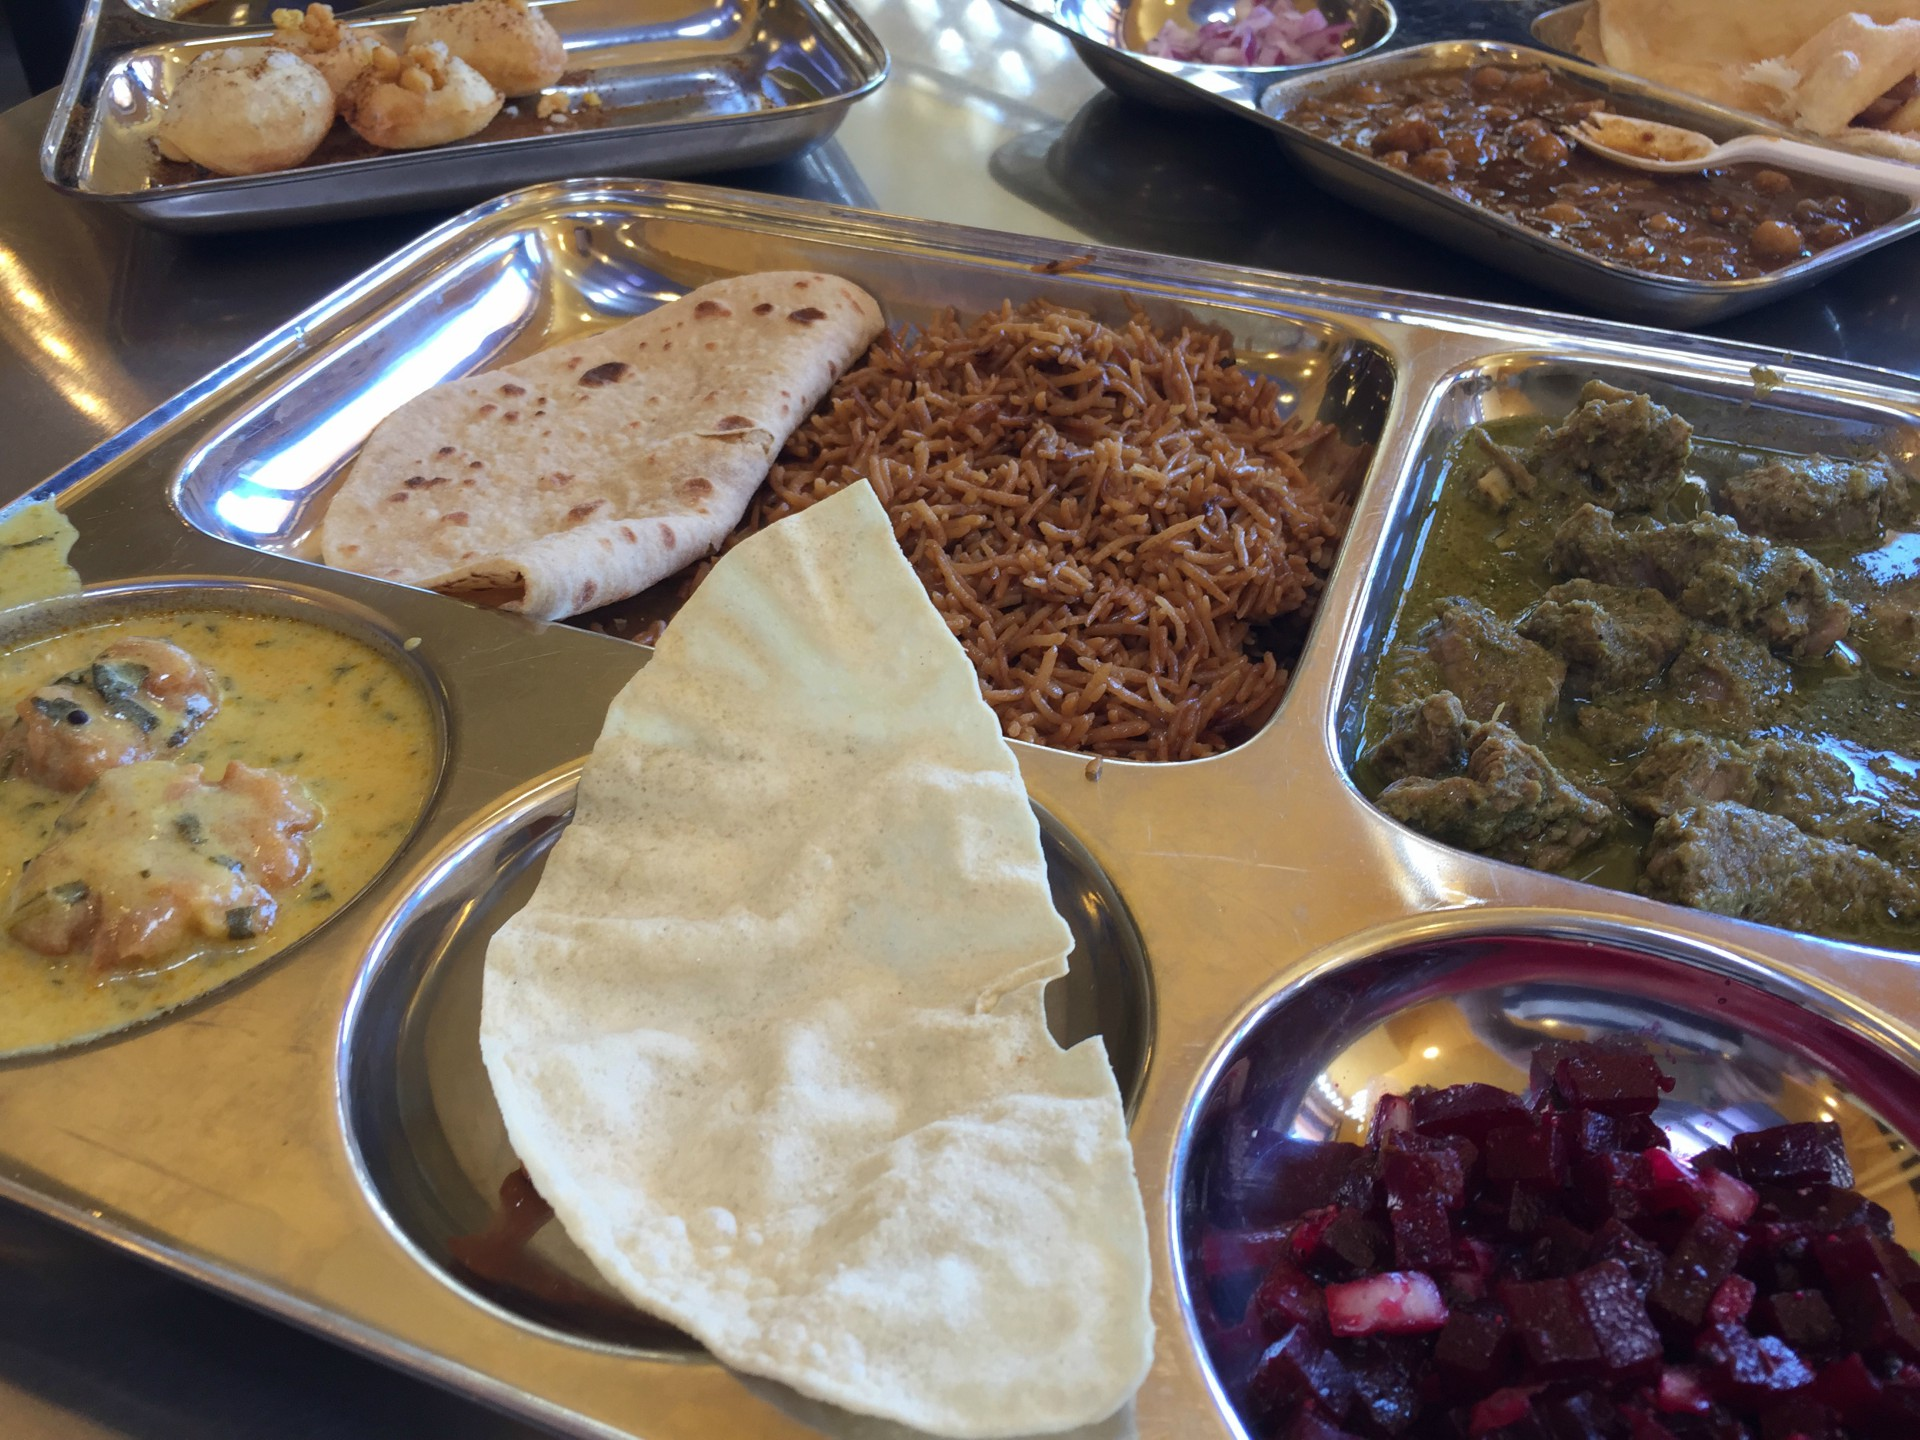 If you get the lunch special at Vik's, you'll receive a tray heavy with a variety of delicious sides.